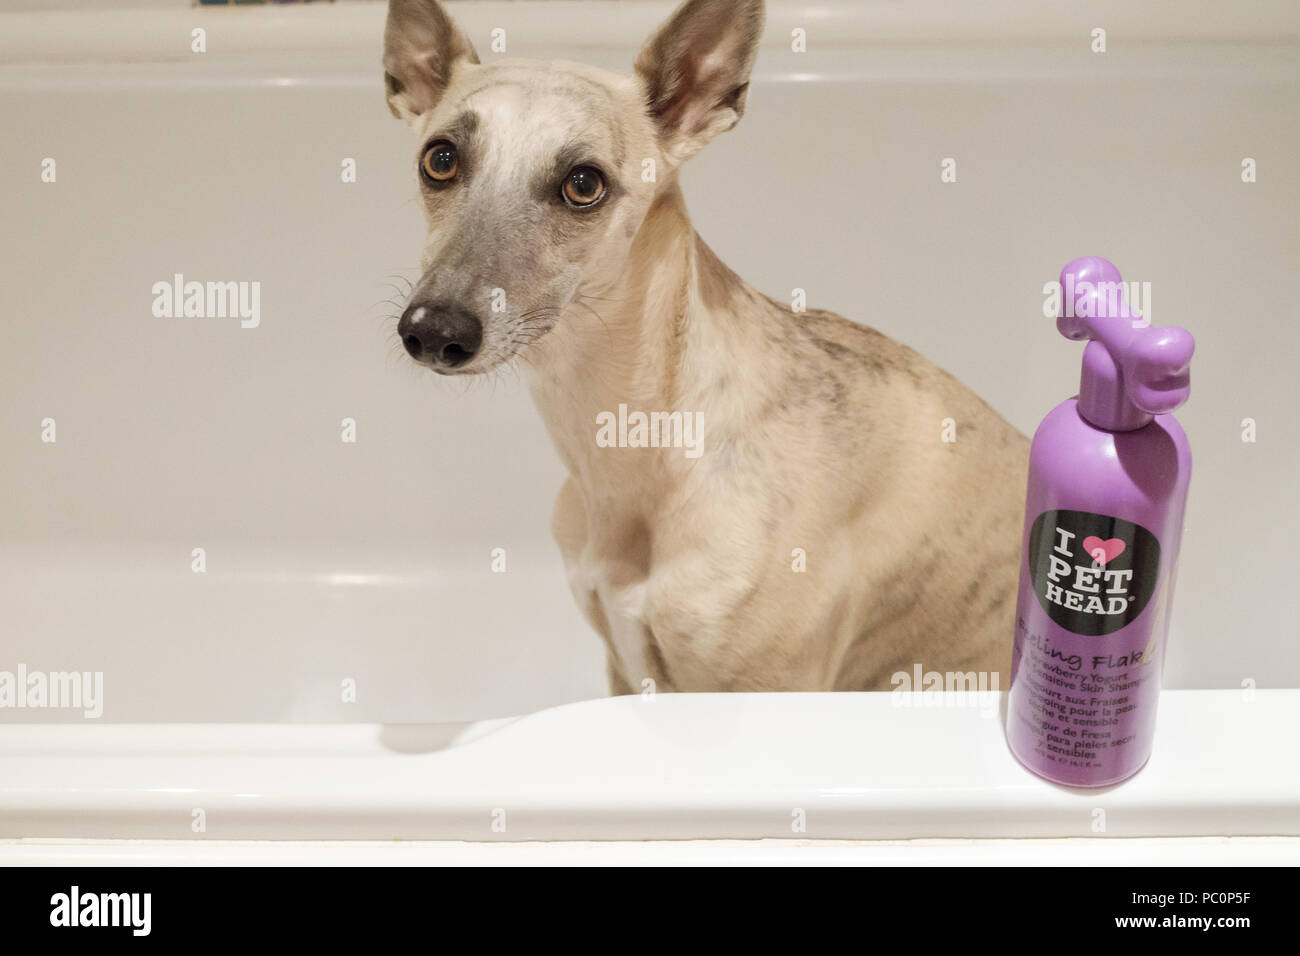 Brindle whippet dog in bath with bottle of dog shampoo Stock Photo